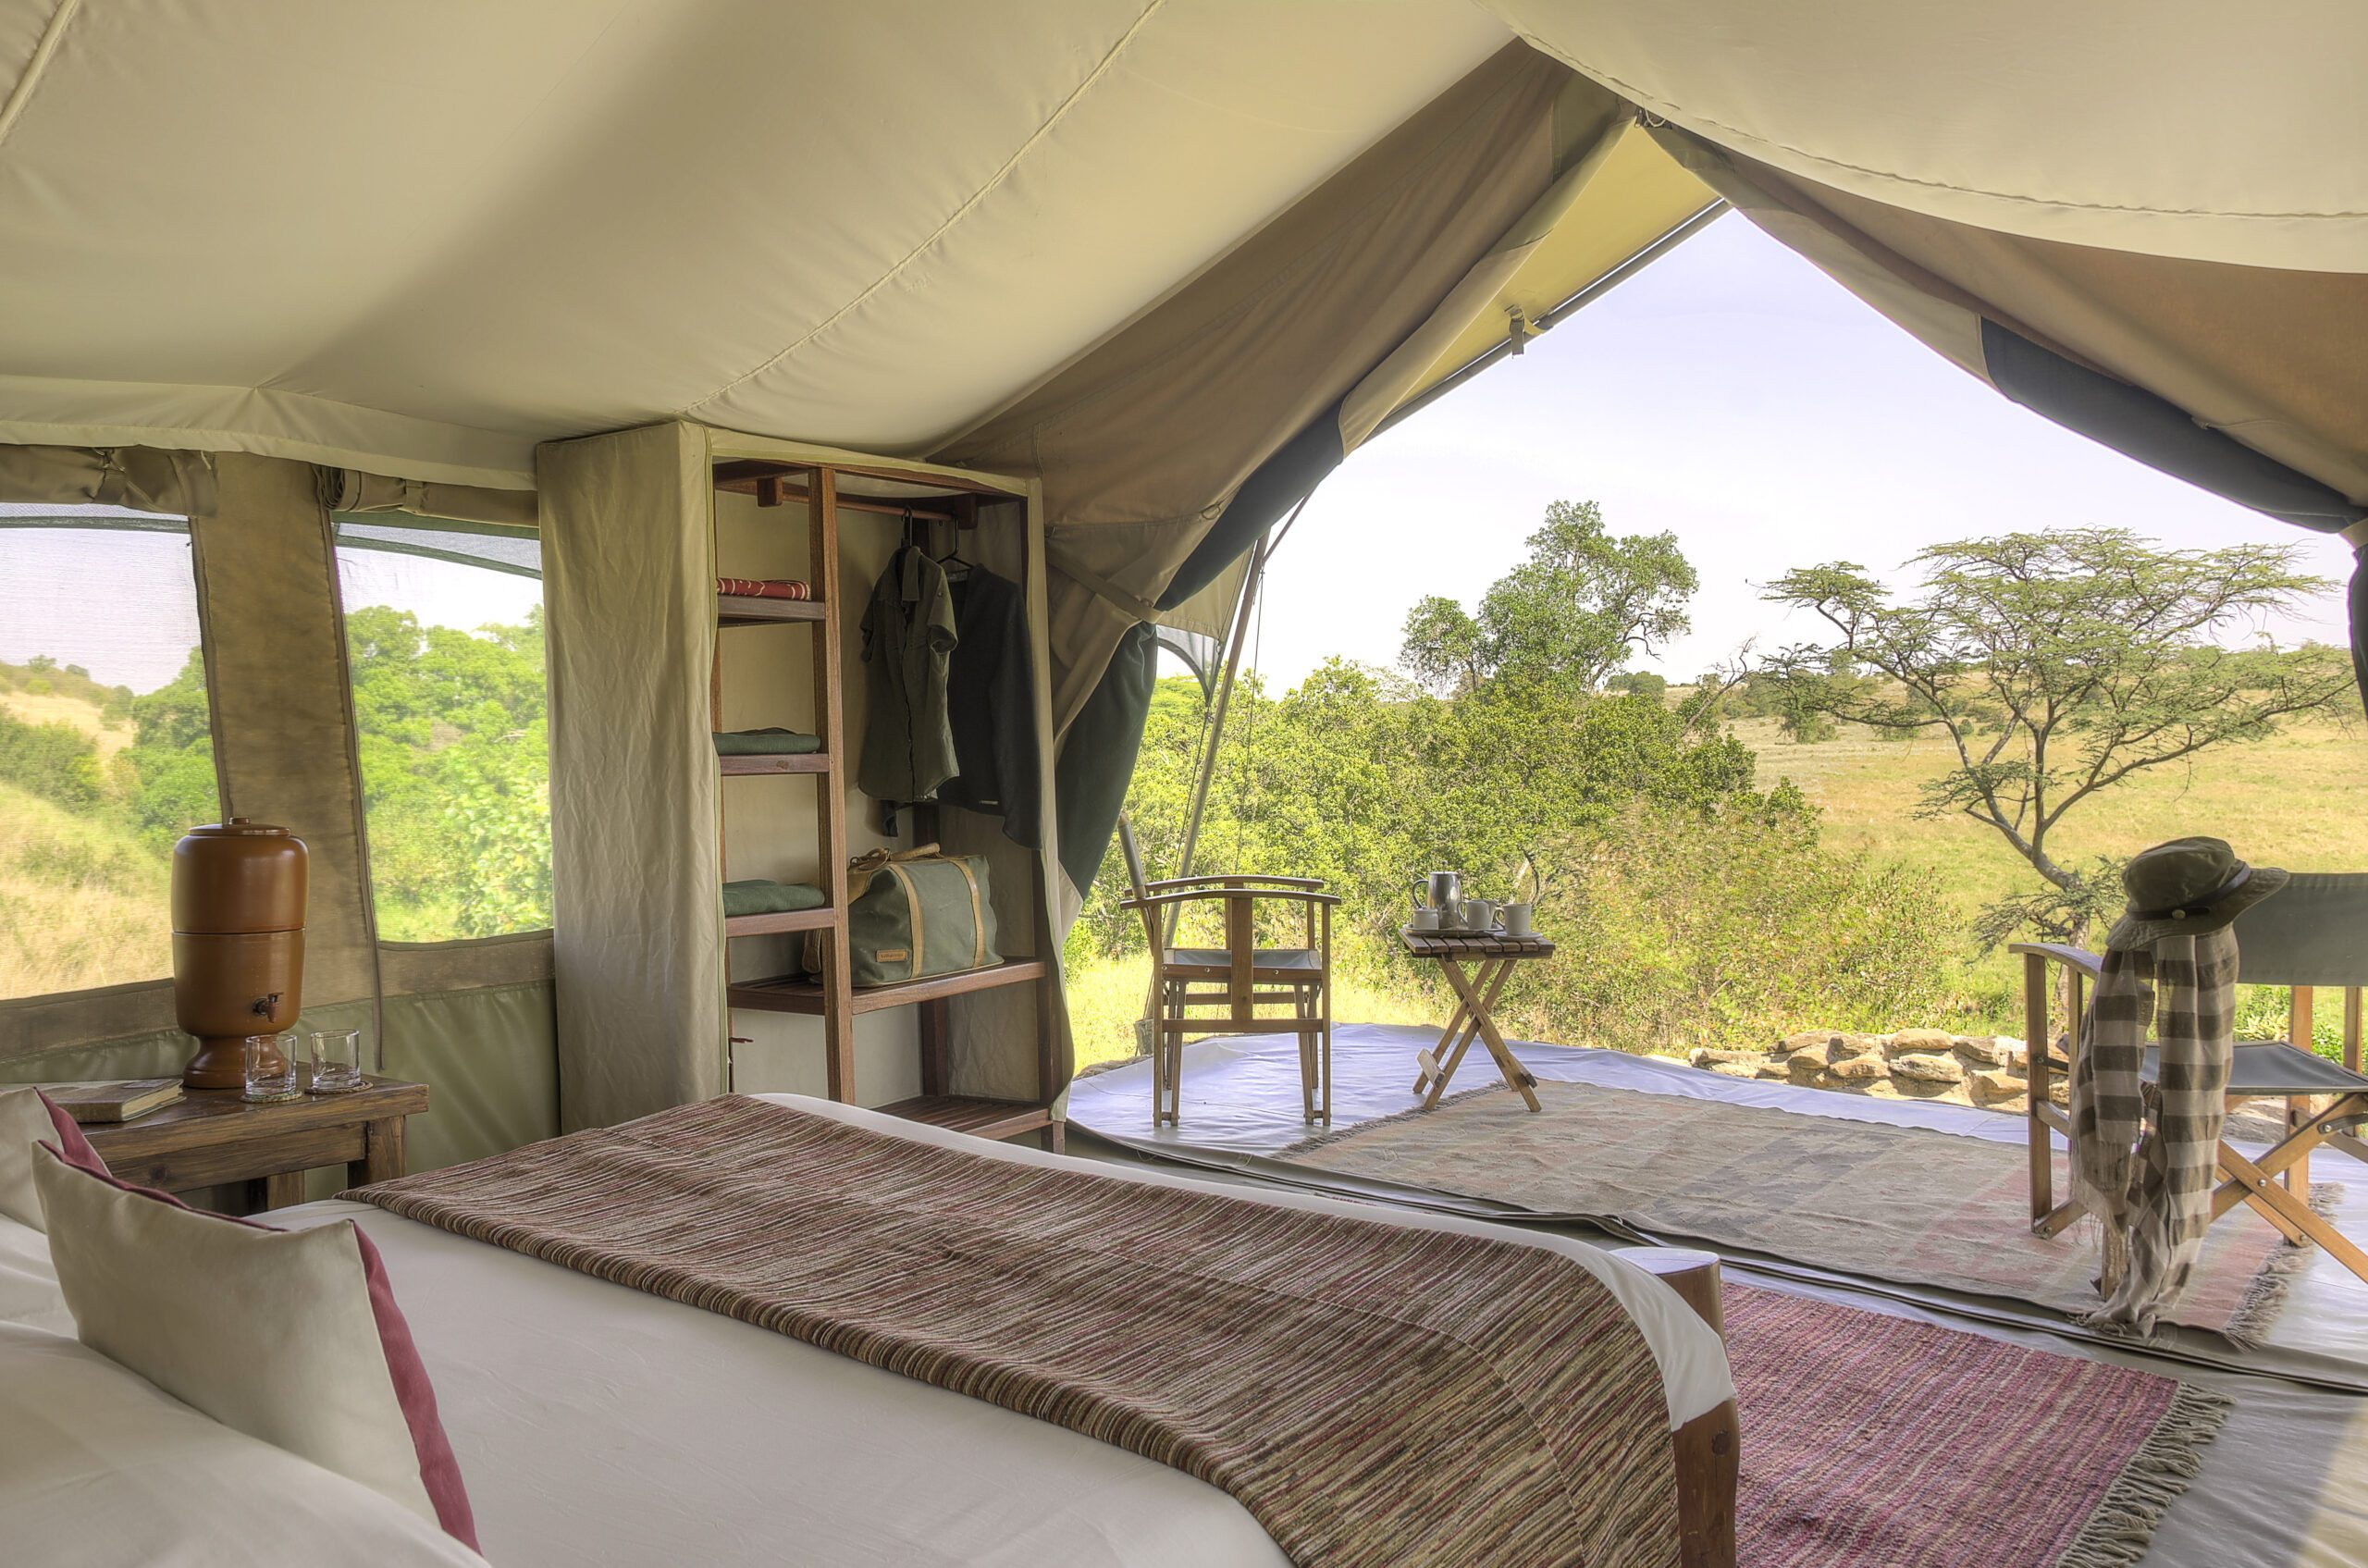 interior view of a tent at Kicheche Mara with a bed, vanity, and chairs overlooking the bush